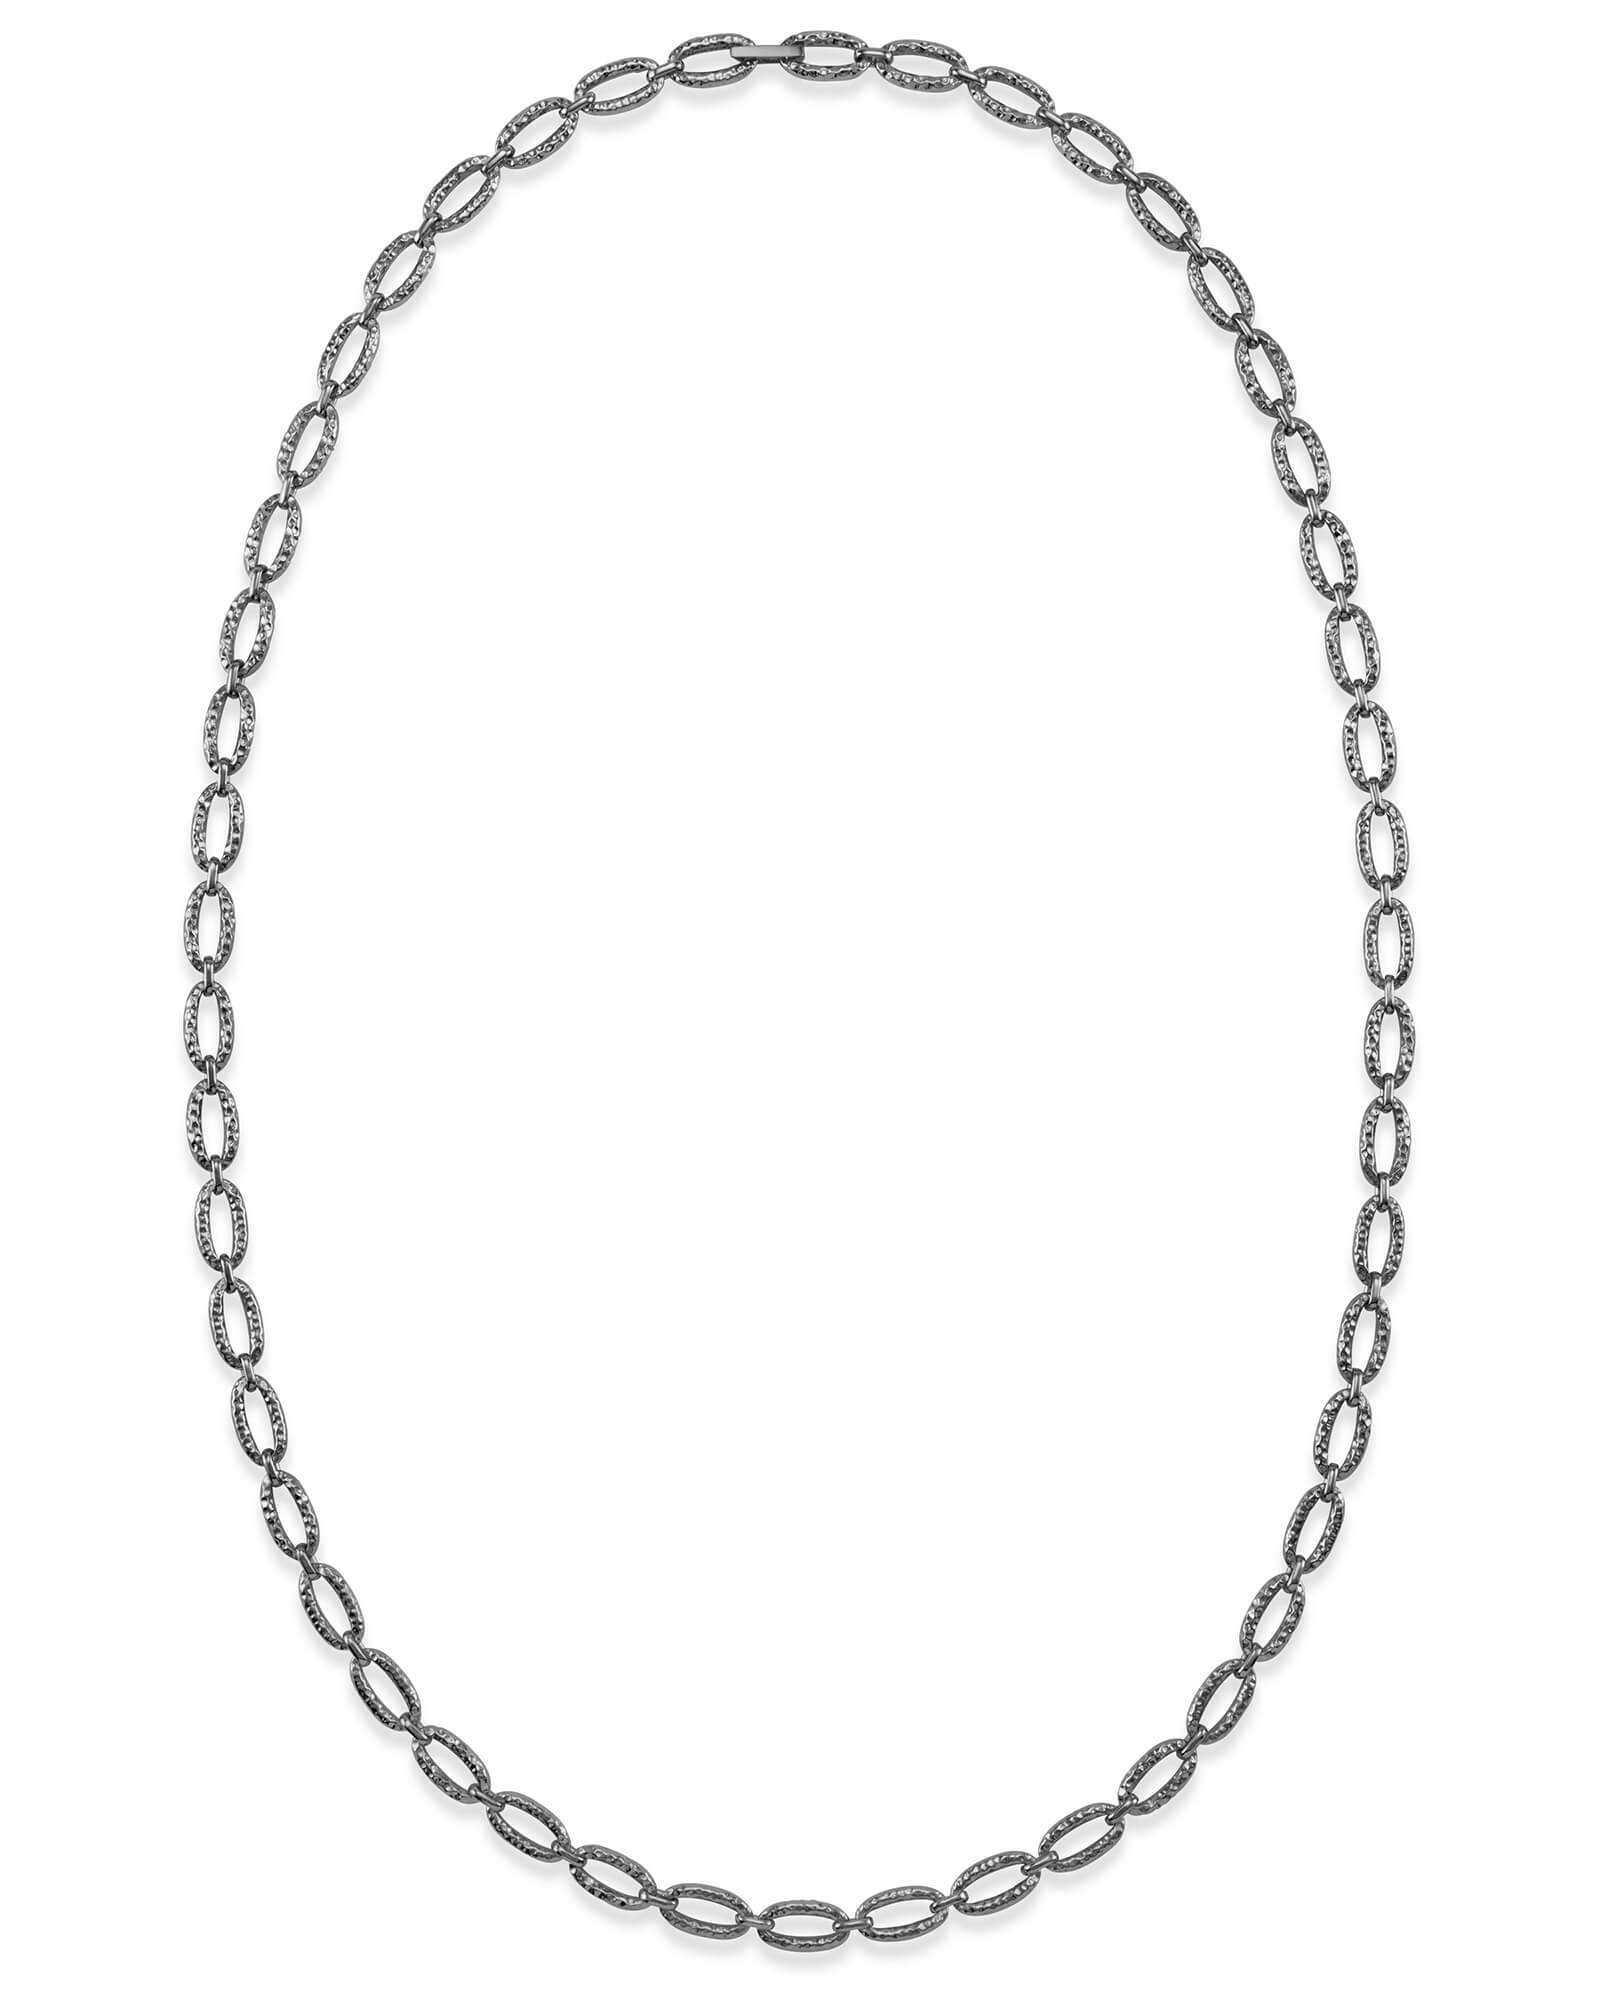 32 Inch Chain Link Necklace in Vintage Silver